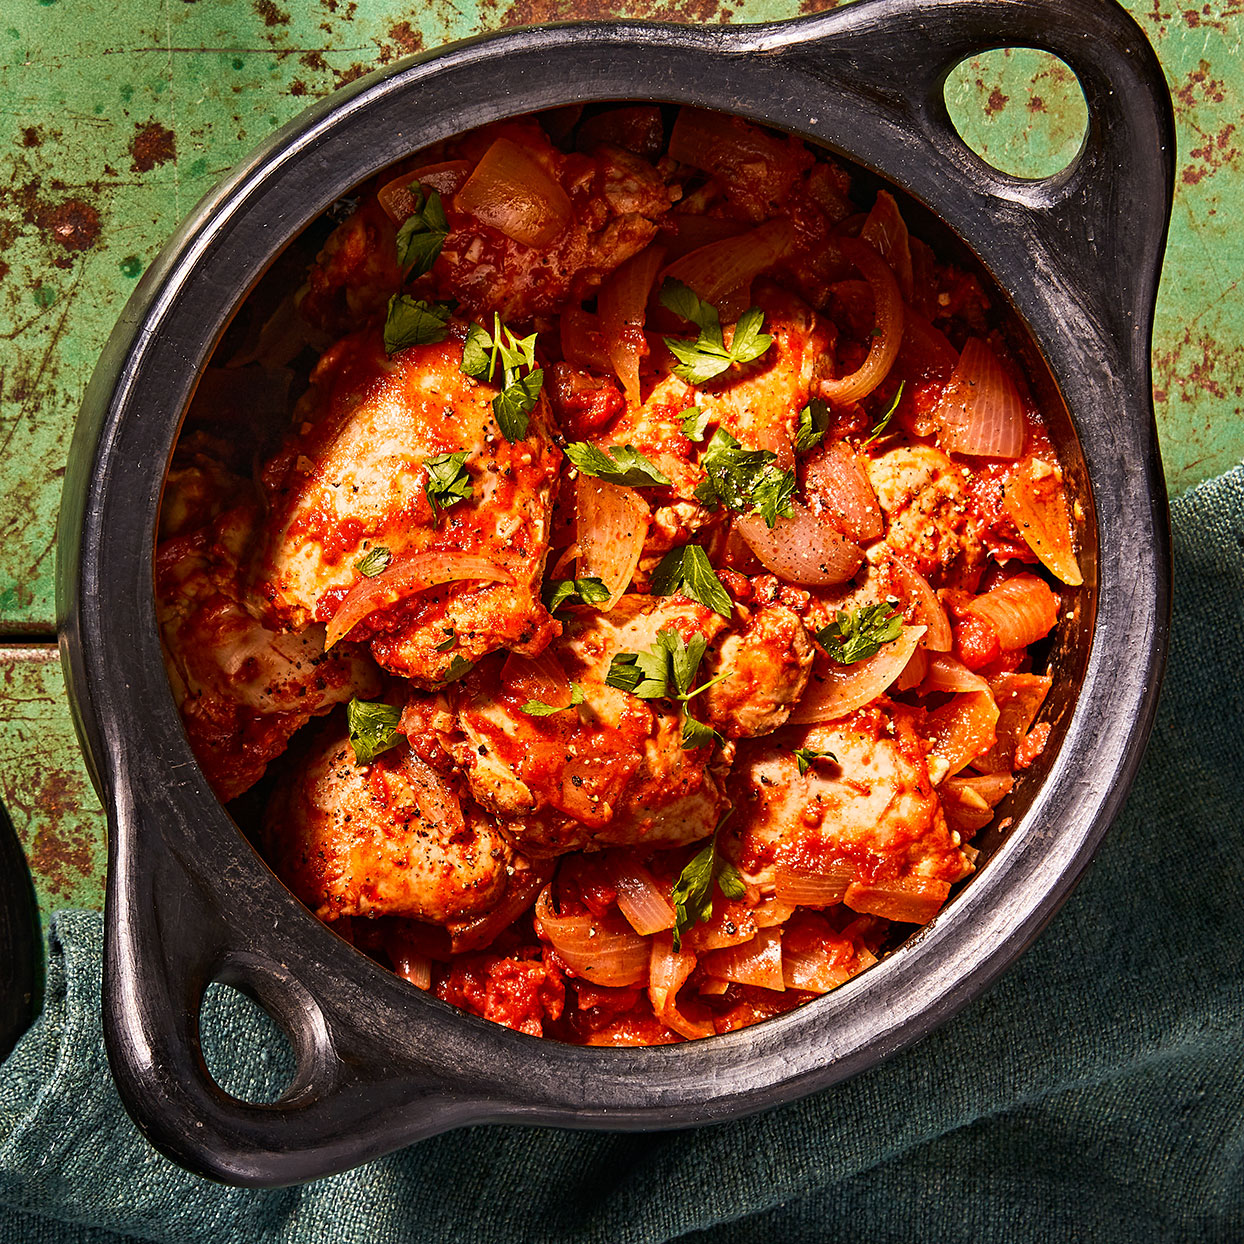 Terra-Cotta Stewed Chicken Allrecipes Trusted Brands